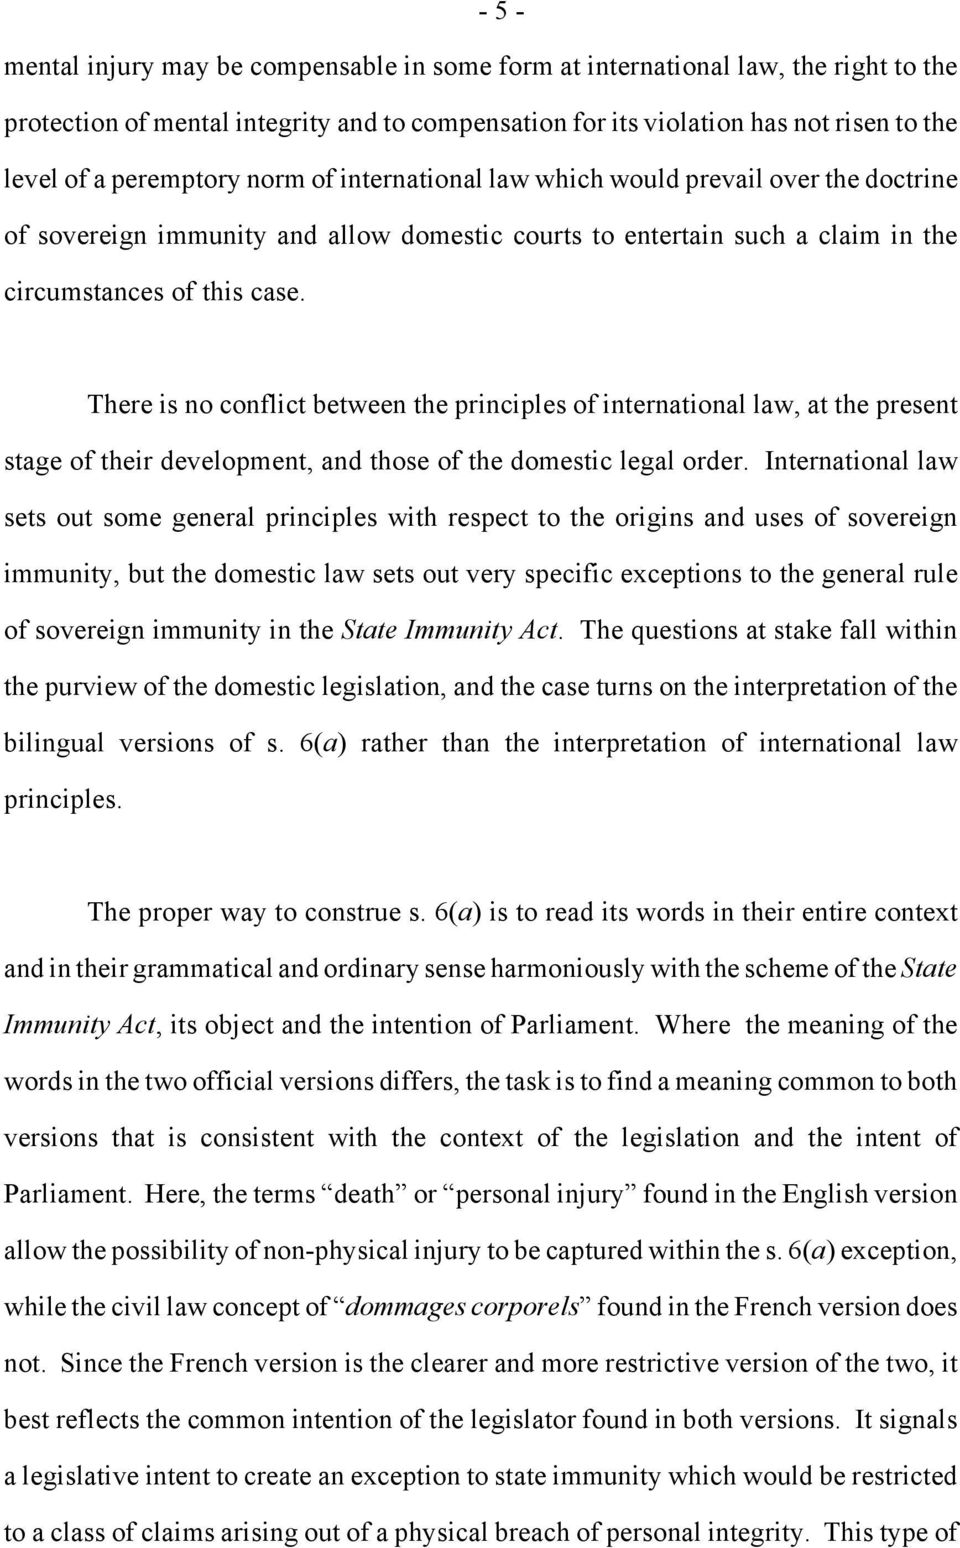 There is no conflict between the principles of international law, at the present stage of their development, and those of the domestic legal order.